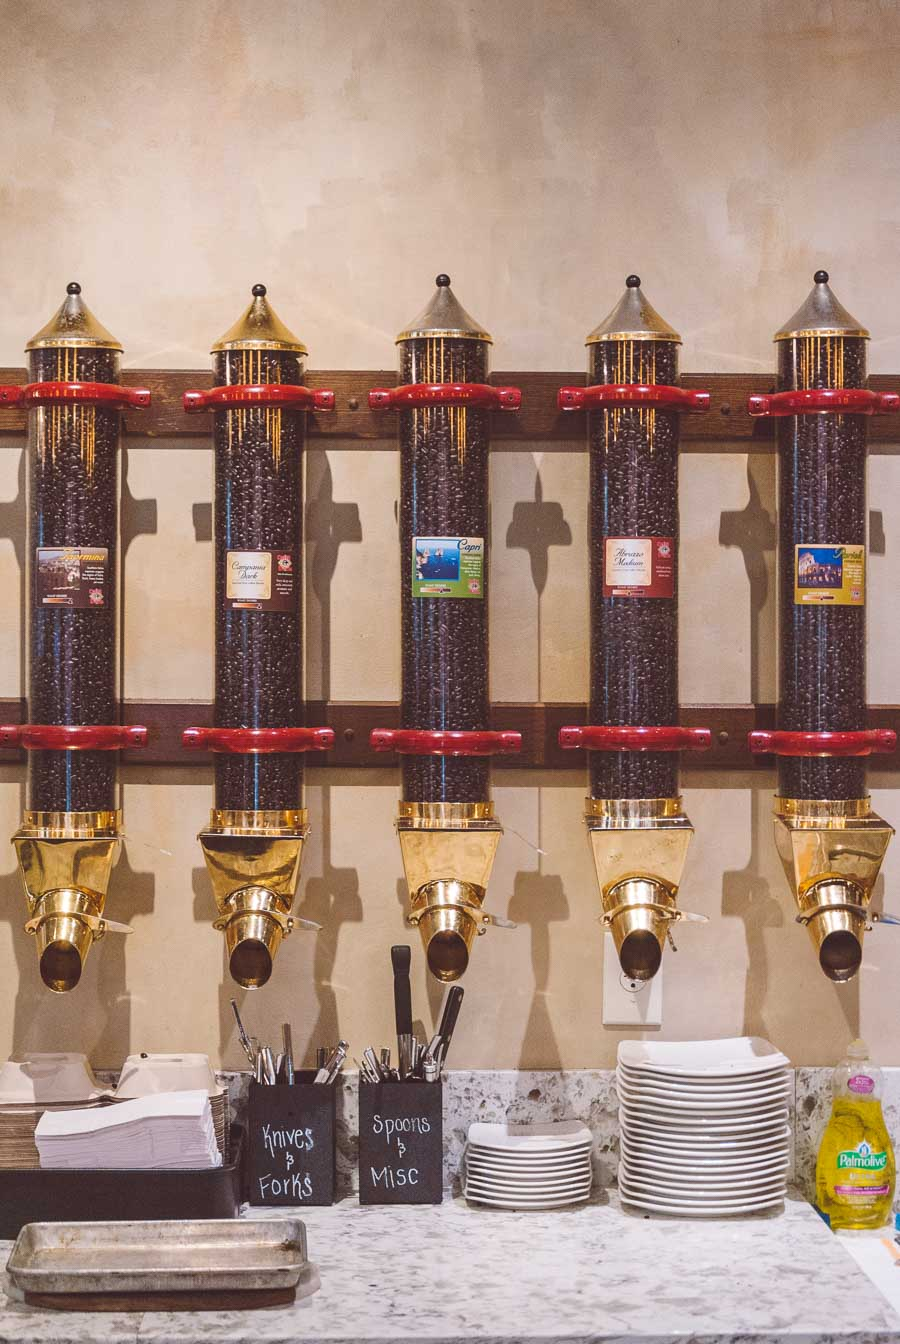 Wall mounted coffee bean holders lined up at Caffe d'arte